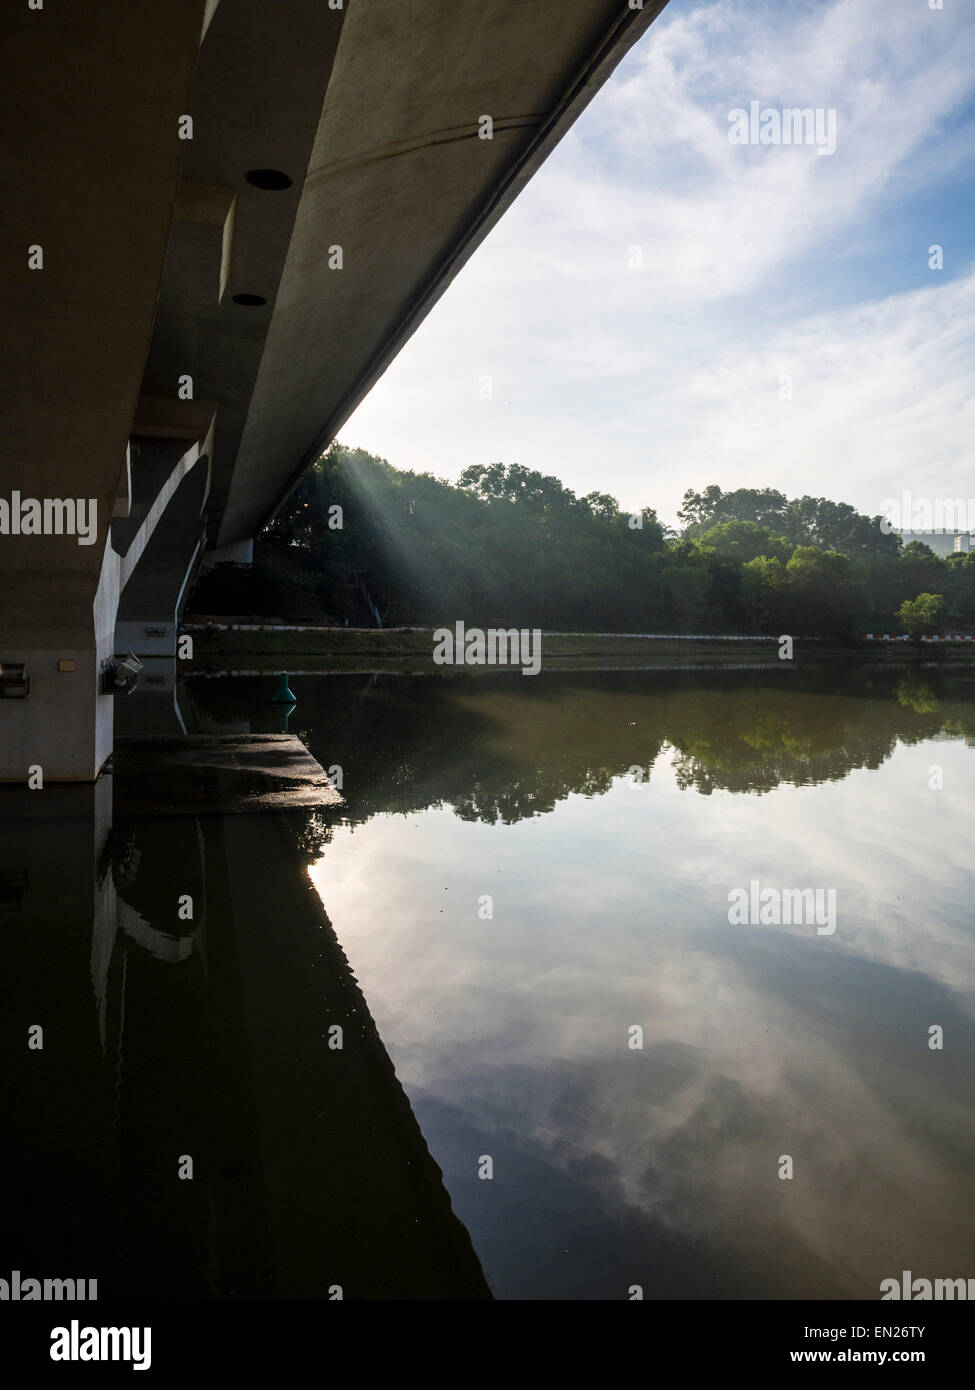 Reflections of trees and clouds on a lake, viewed from under a bridge - Stock Image